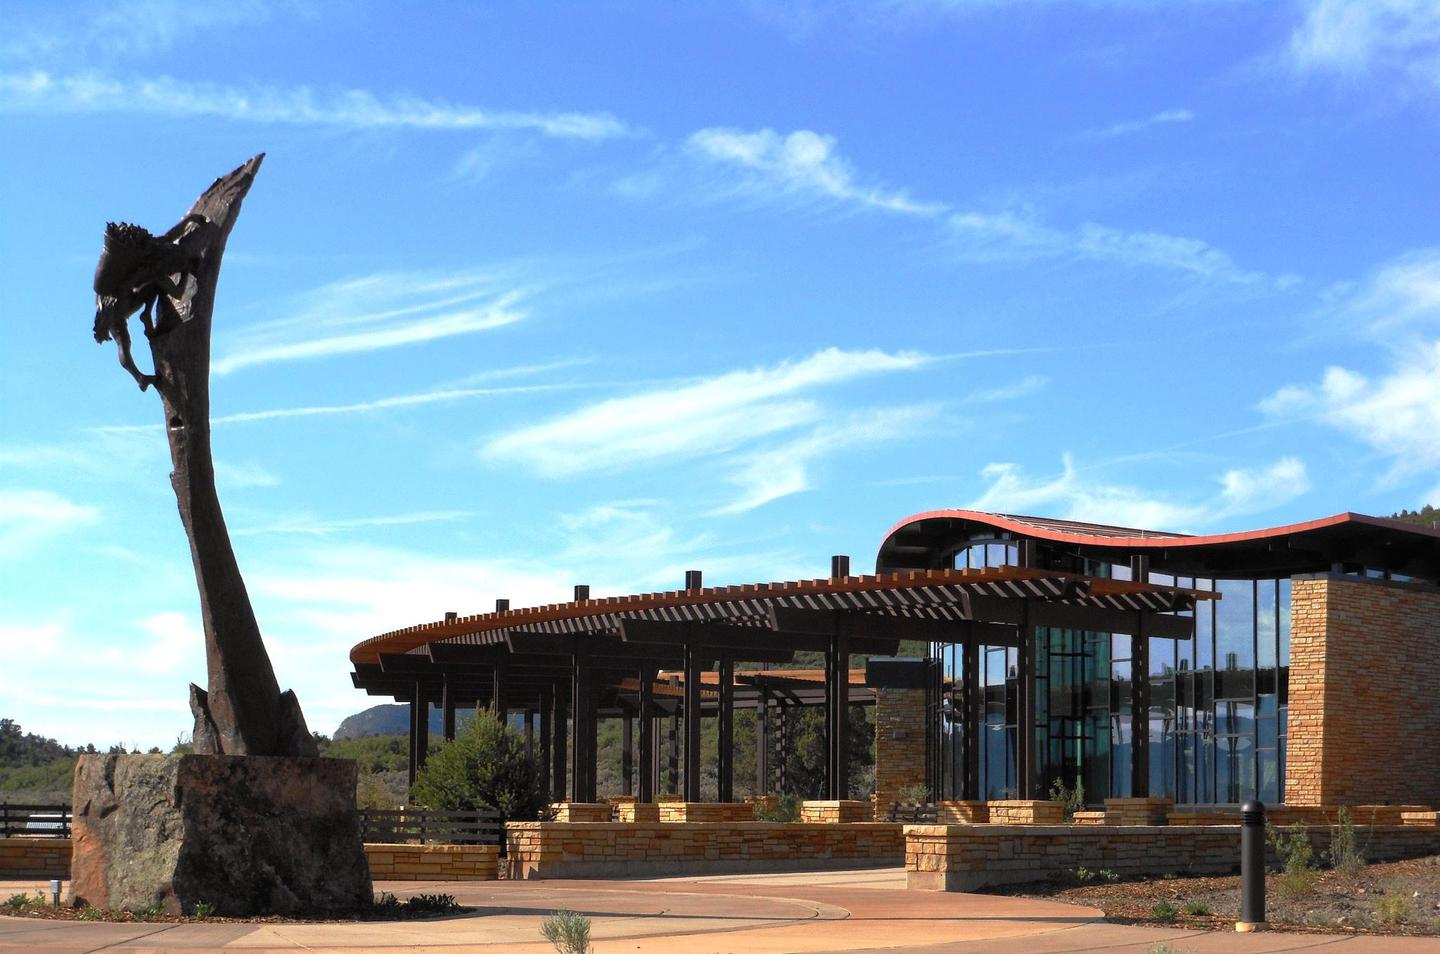 Mesa Verde Visitor and Research CenterMesa Verde Visitor and Research Center's Welcome Plaza